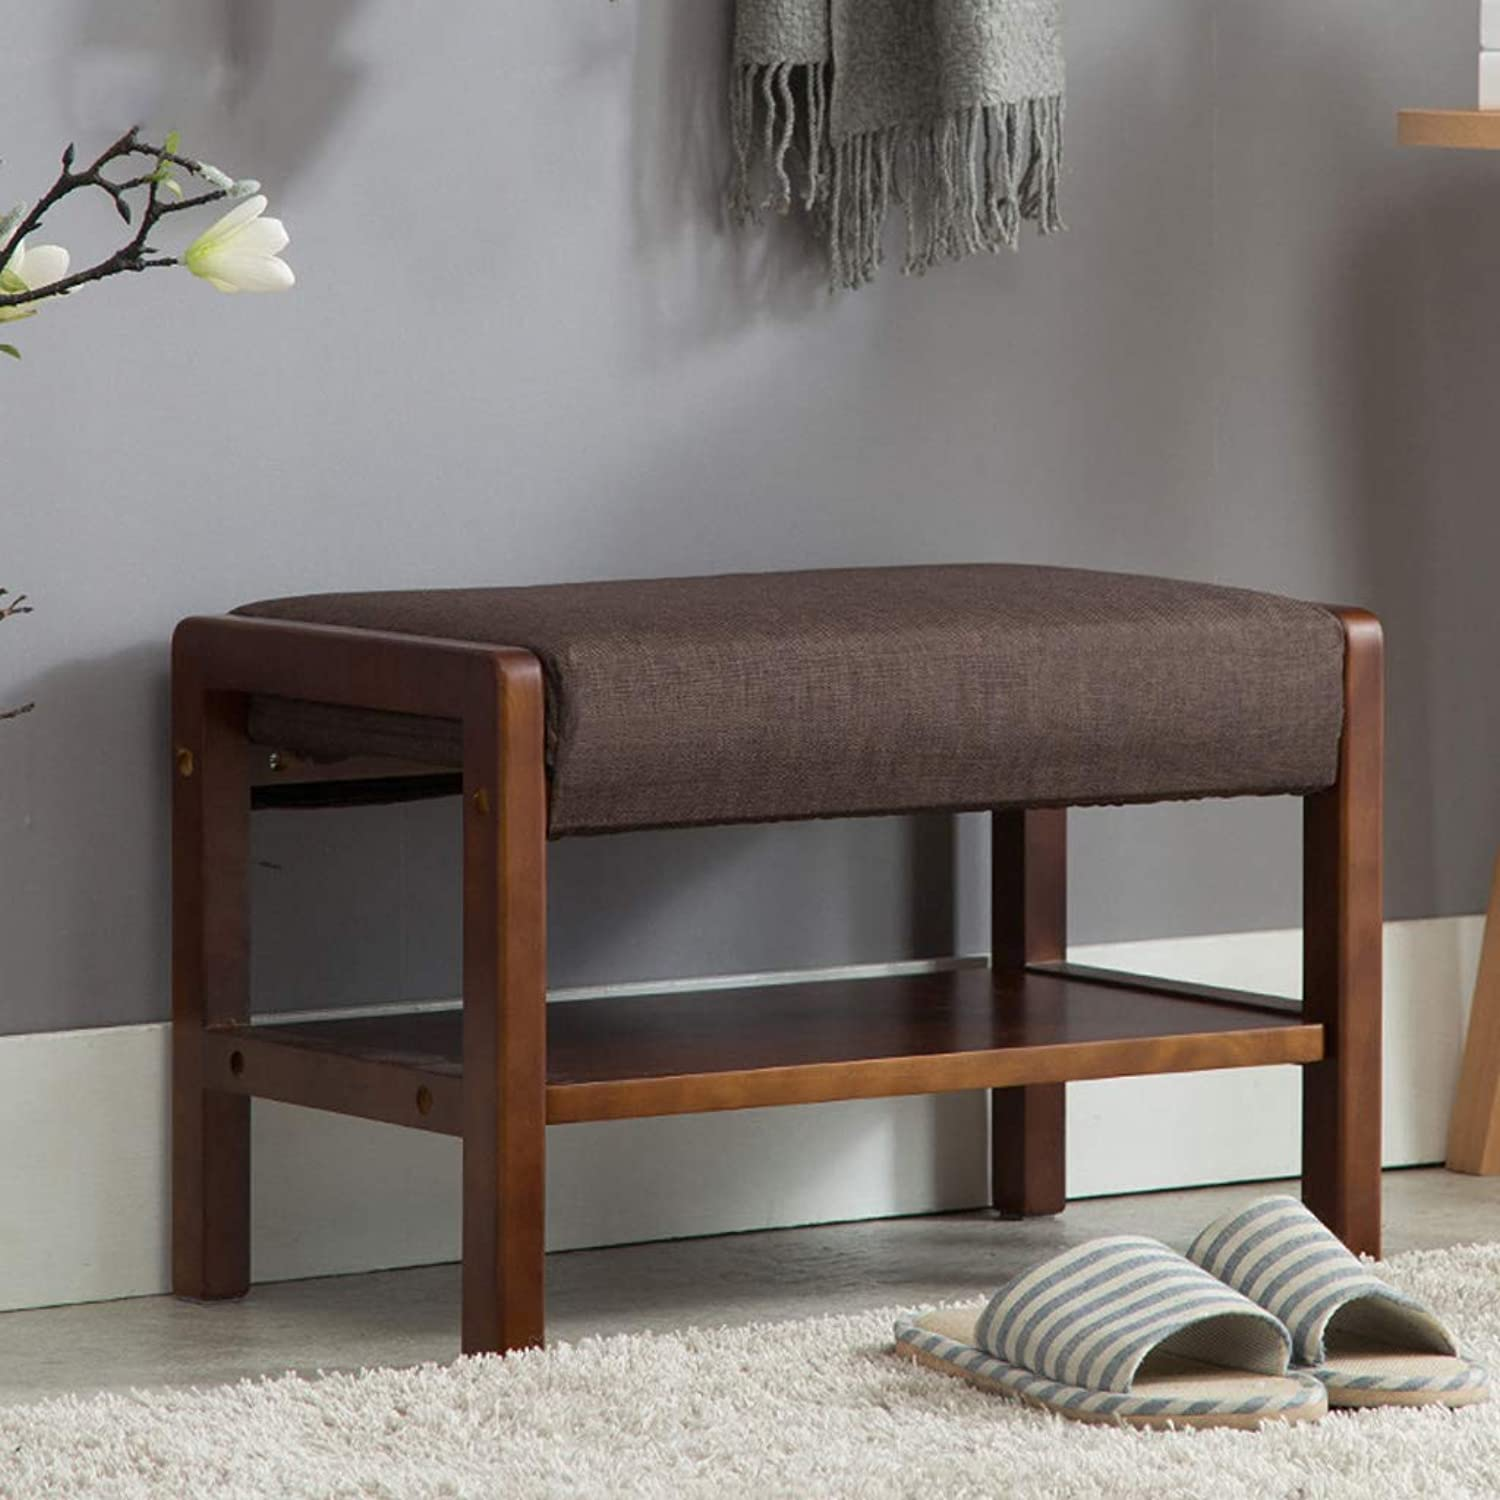 CIGONG Change shoes Stool Storage Stool Simple Solid Wood shoes Rack Fabric Door shoes Bench 54.5x32x25cm Wooden Bench (color   Brown)